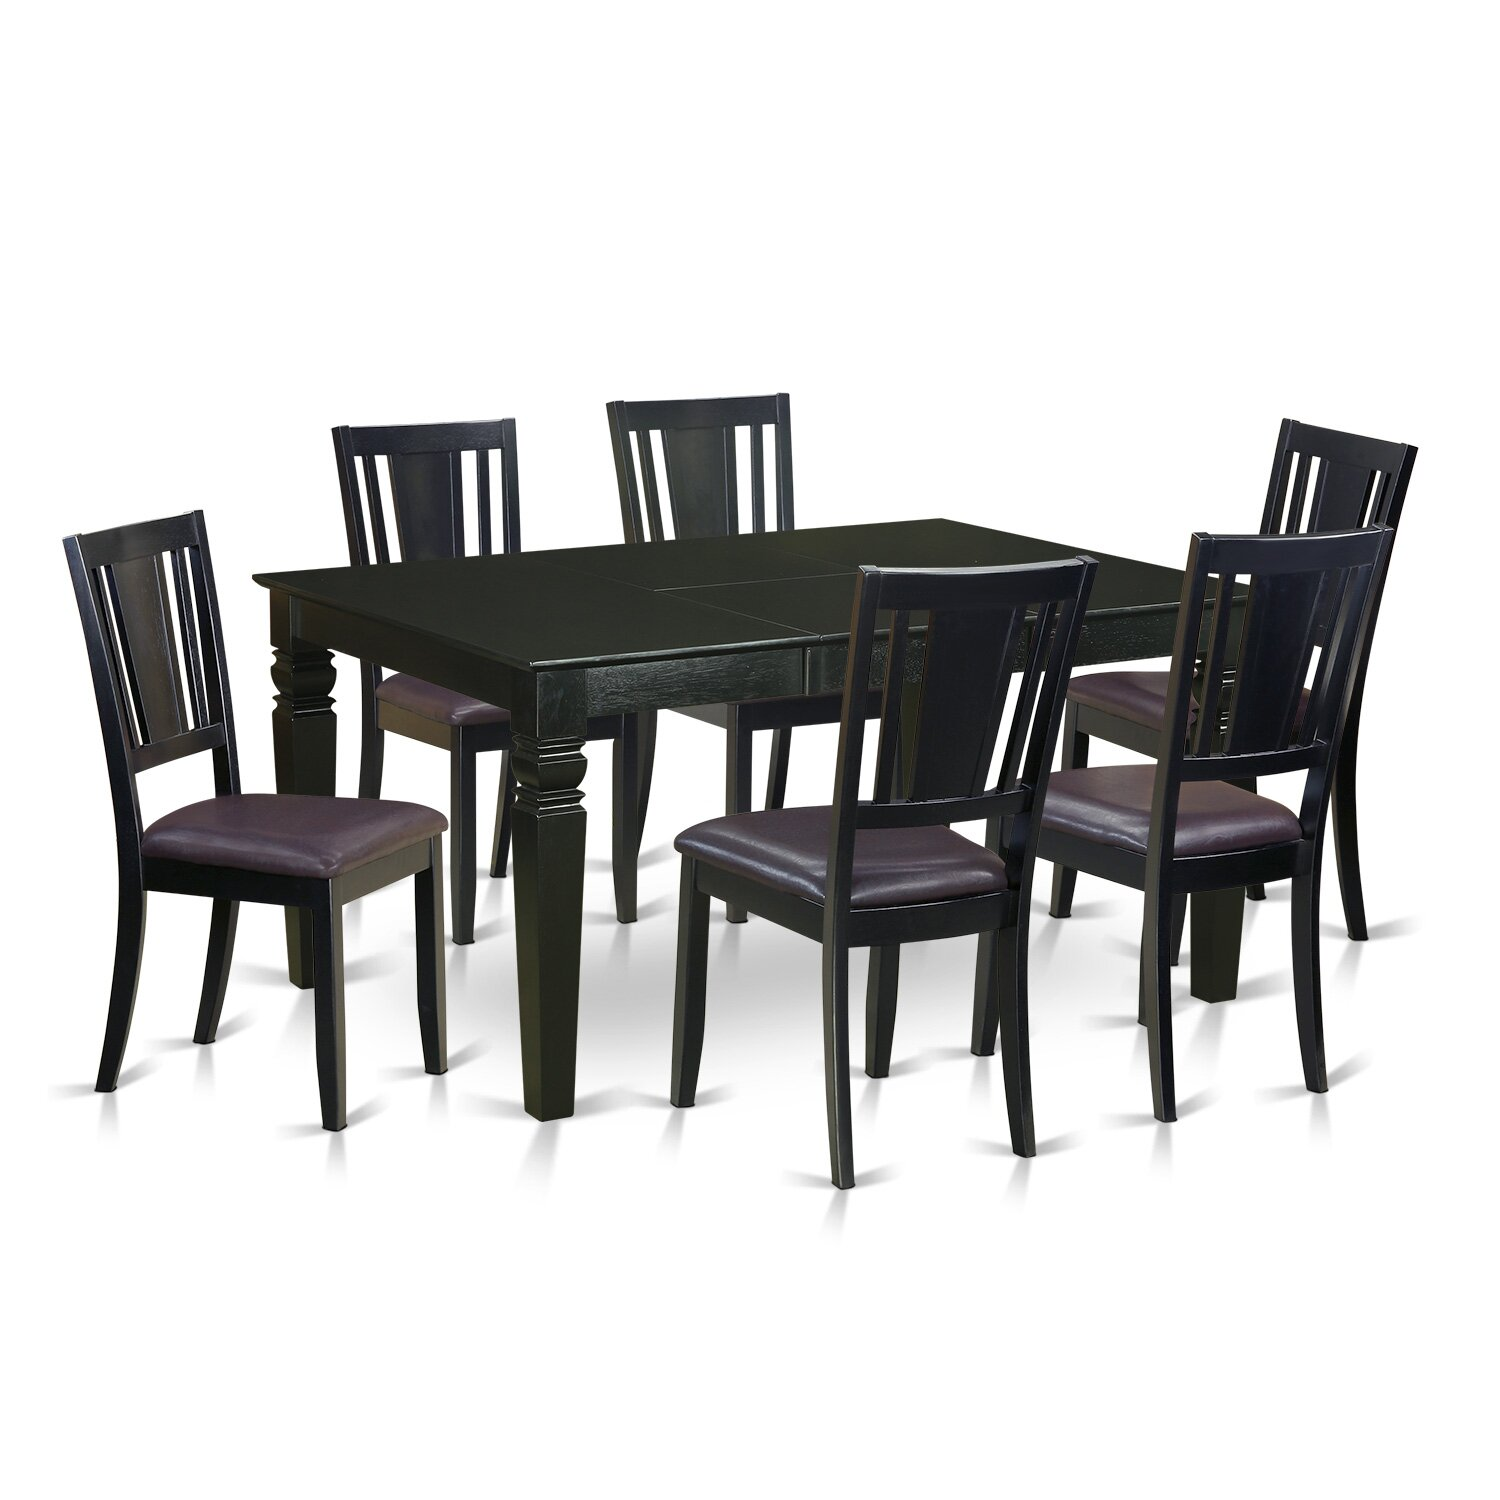 Wooden importers weston 7 piece dining set wayfair for 7 piece dining room set